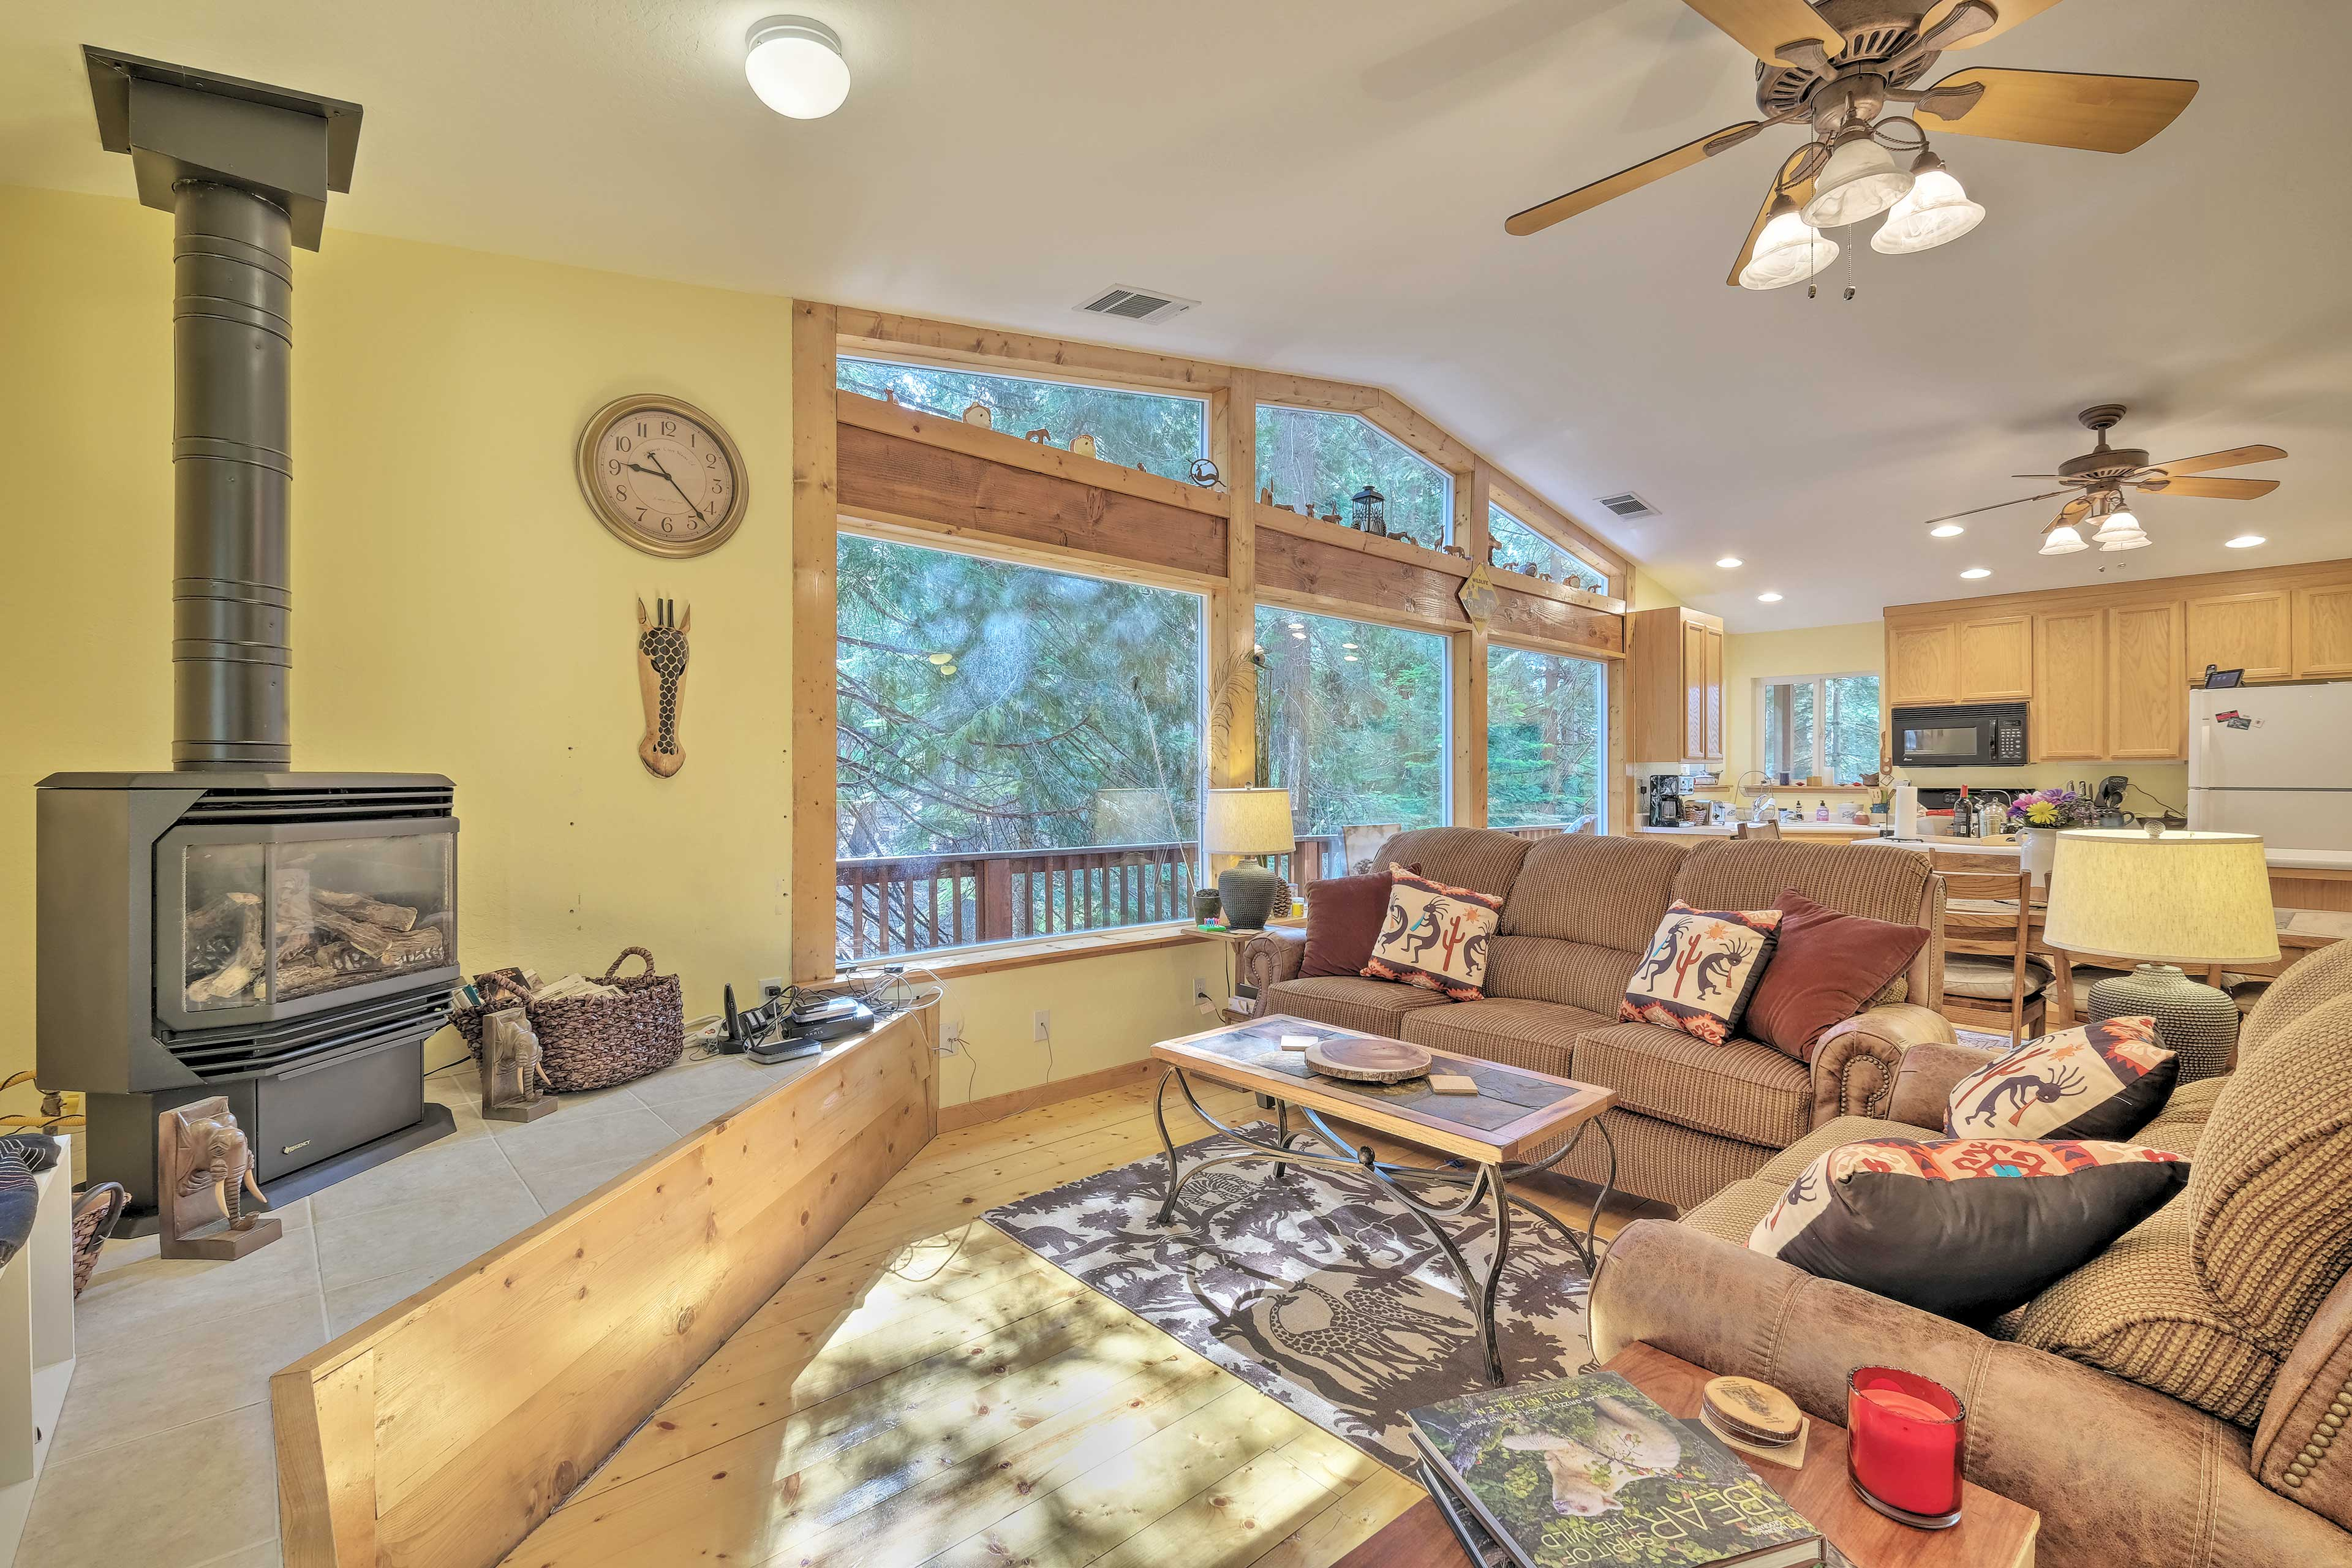 Cozy up with loved ones inside this spacious, modern cabin.